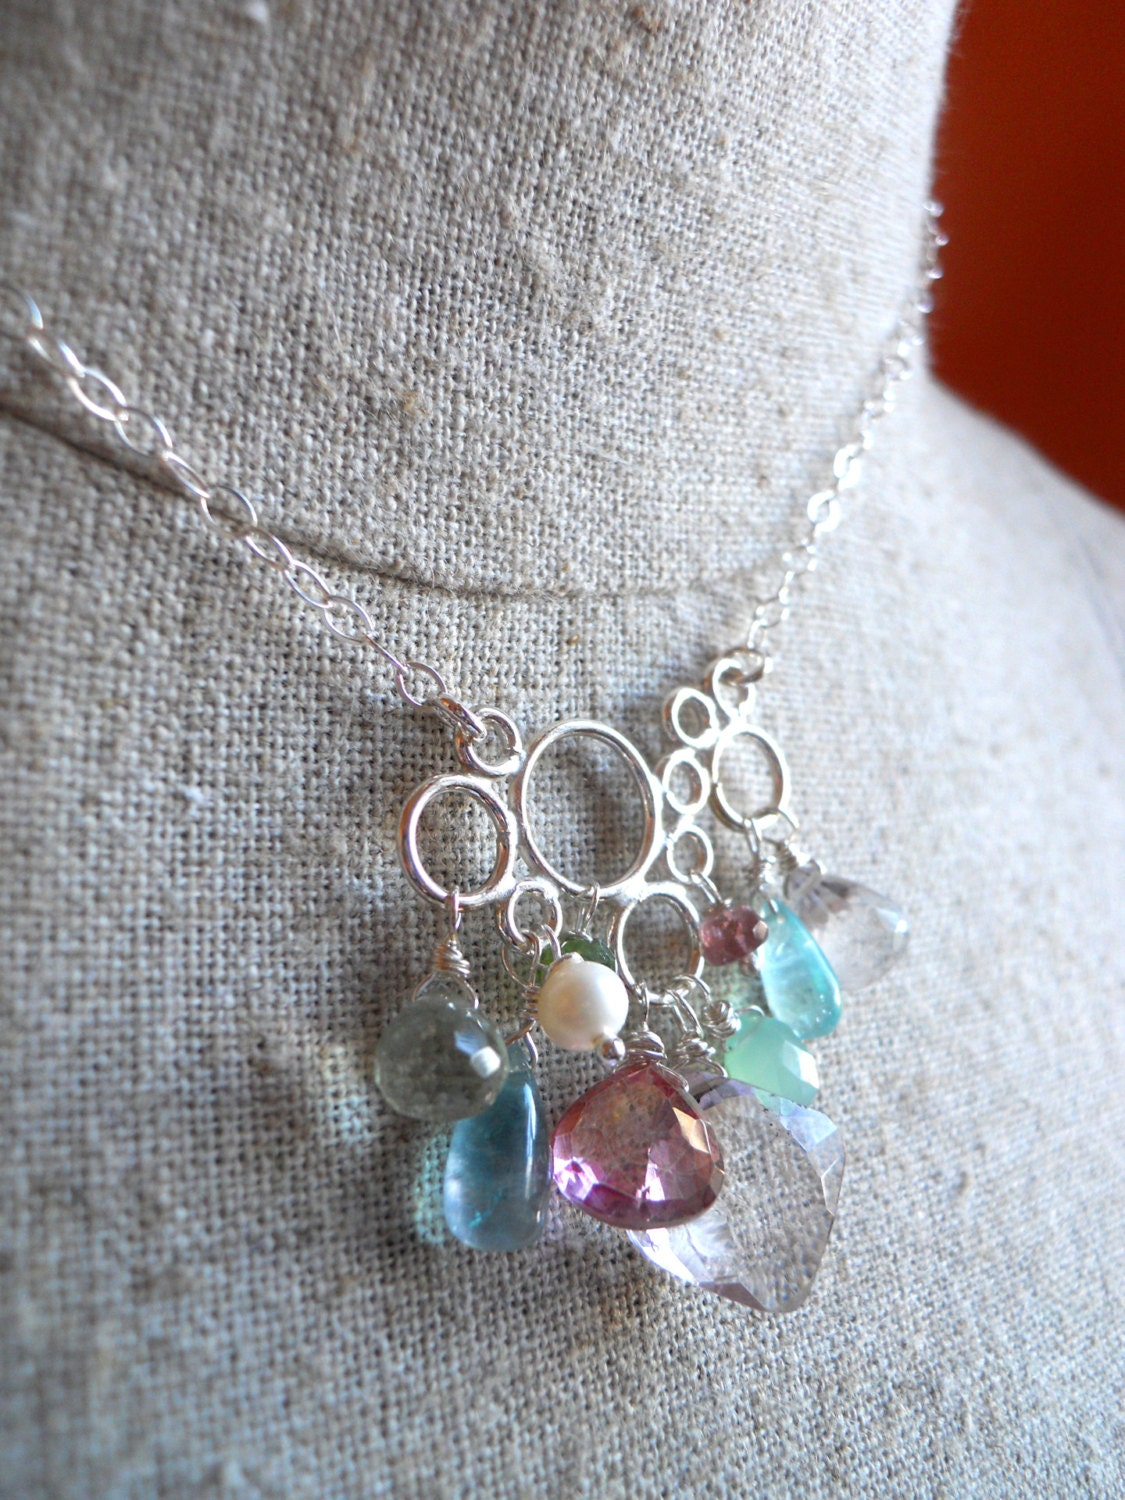 Pink and green bubble necklace with chrysoprase, fluorite, pearl, mystic quartz - $95.00 USD